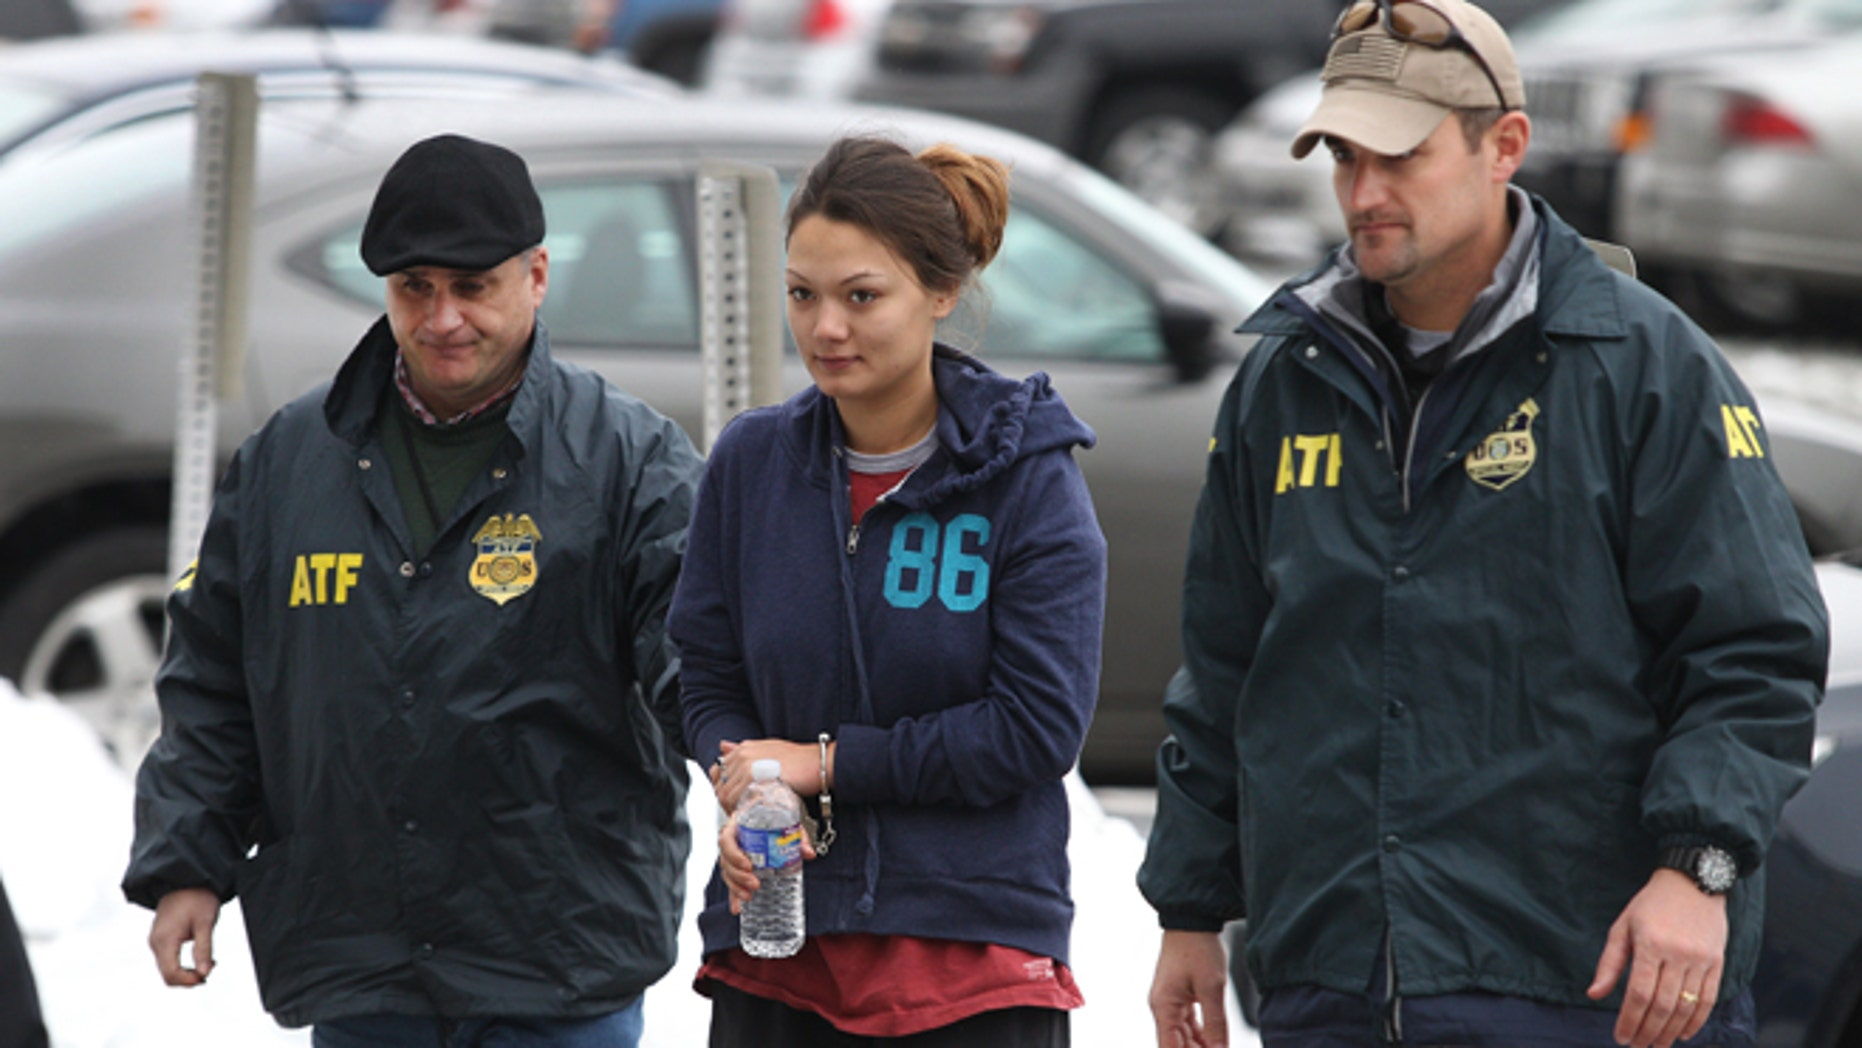 Dec. 28, 2012: Dawn Nguyen is escorted into the Federal Building in Rochester, N.Y., and charged in connection with the guns used in the Christmas Eve ambush slaying of two volunteer firefighters responding to a house fire in Webster, N.Y.